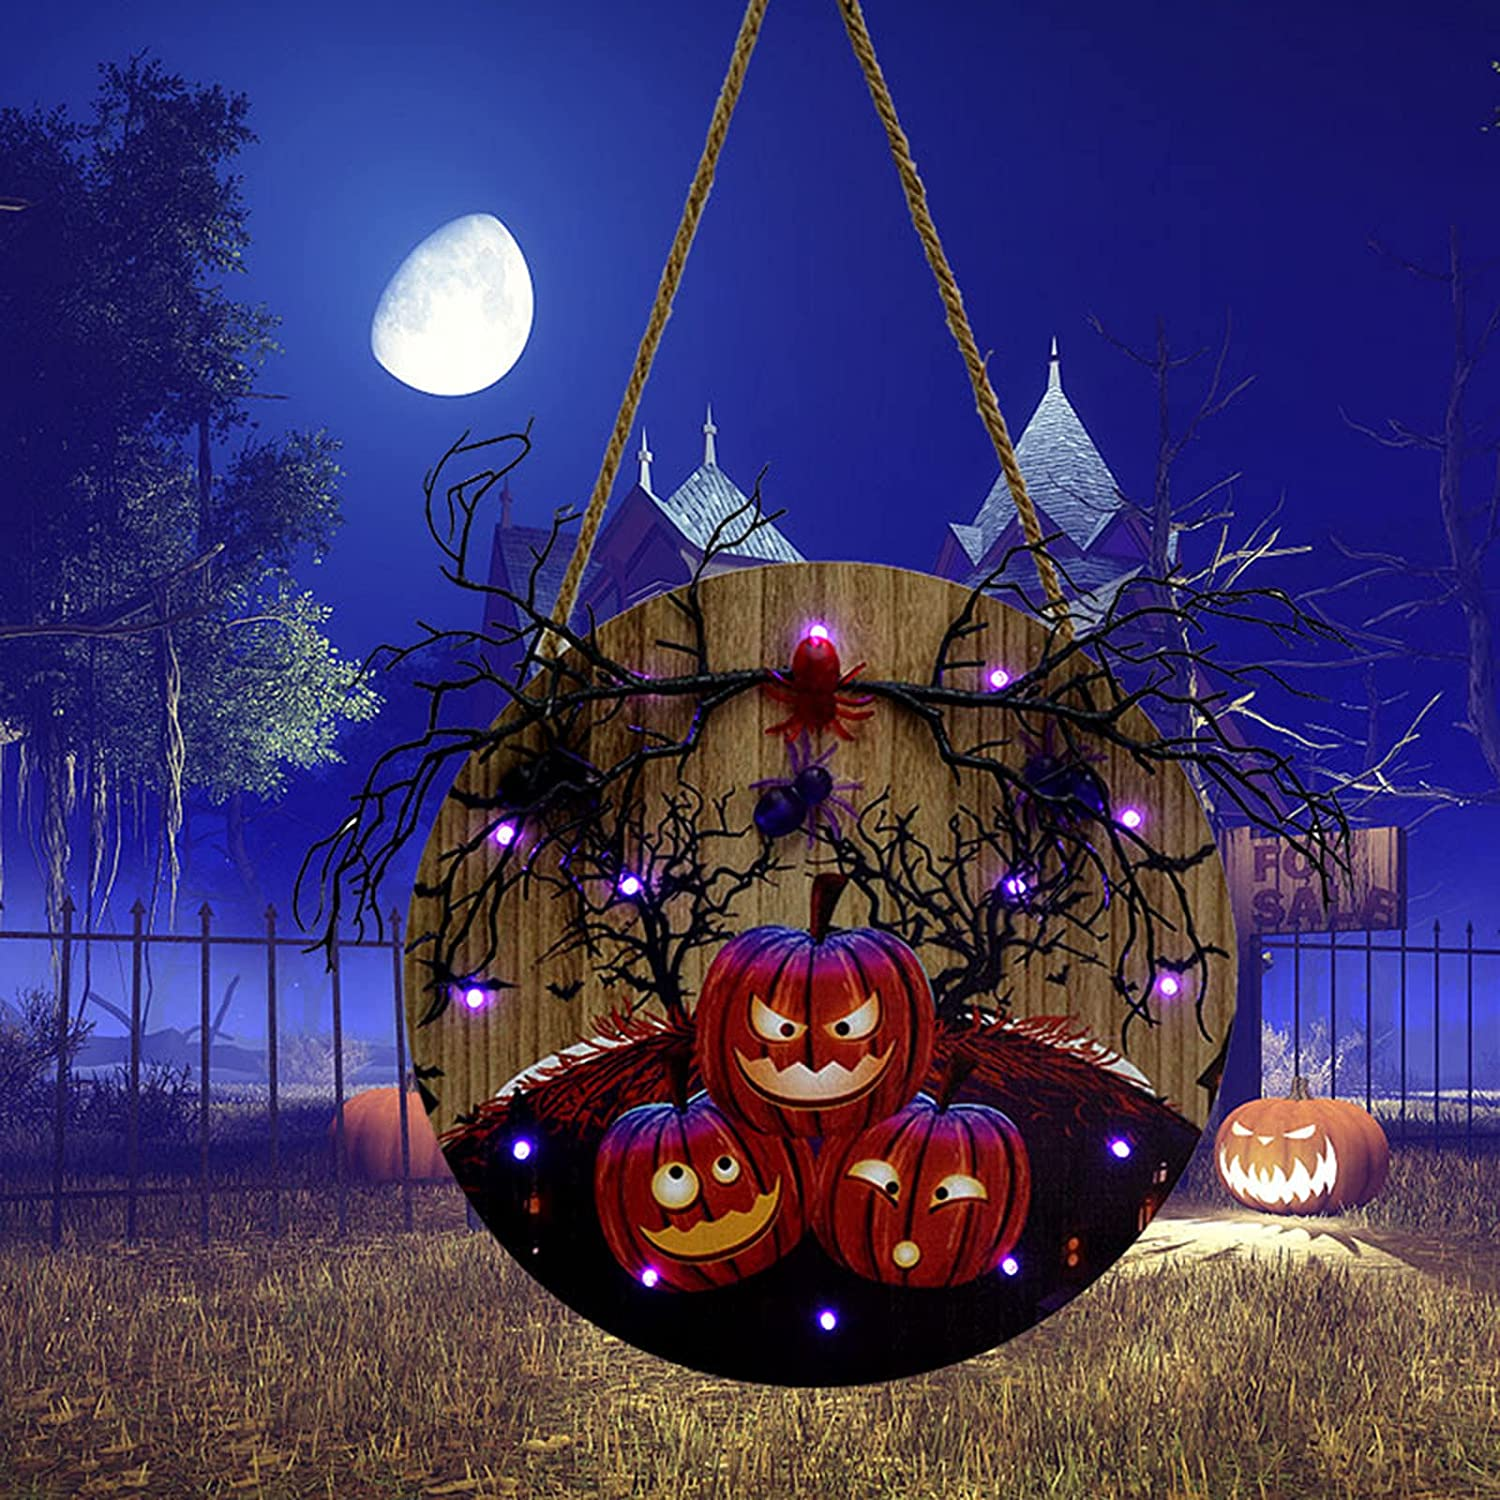 Halloween Party Supplies Hanging With LED Sign Light Ranking TOP12 Max 81% OFF